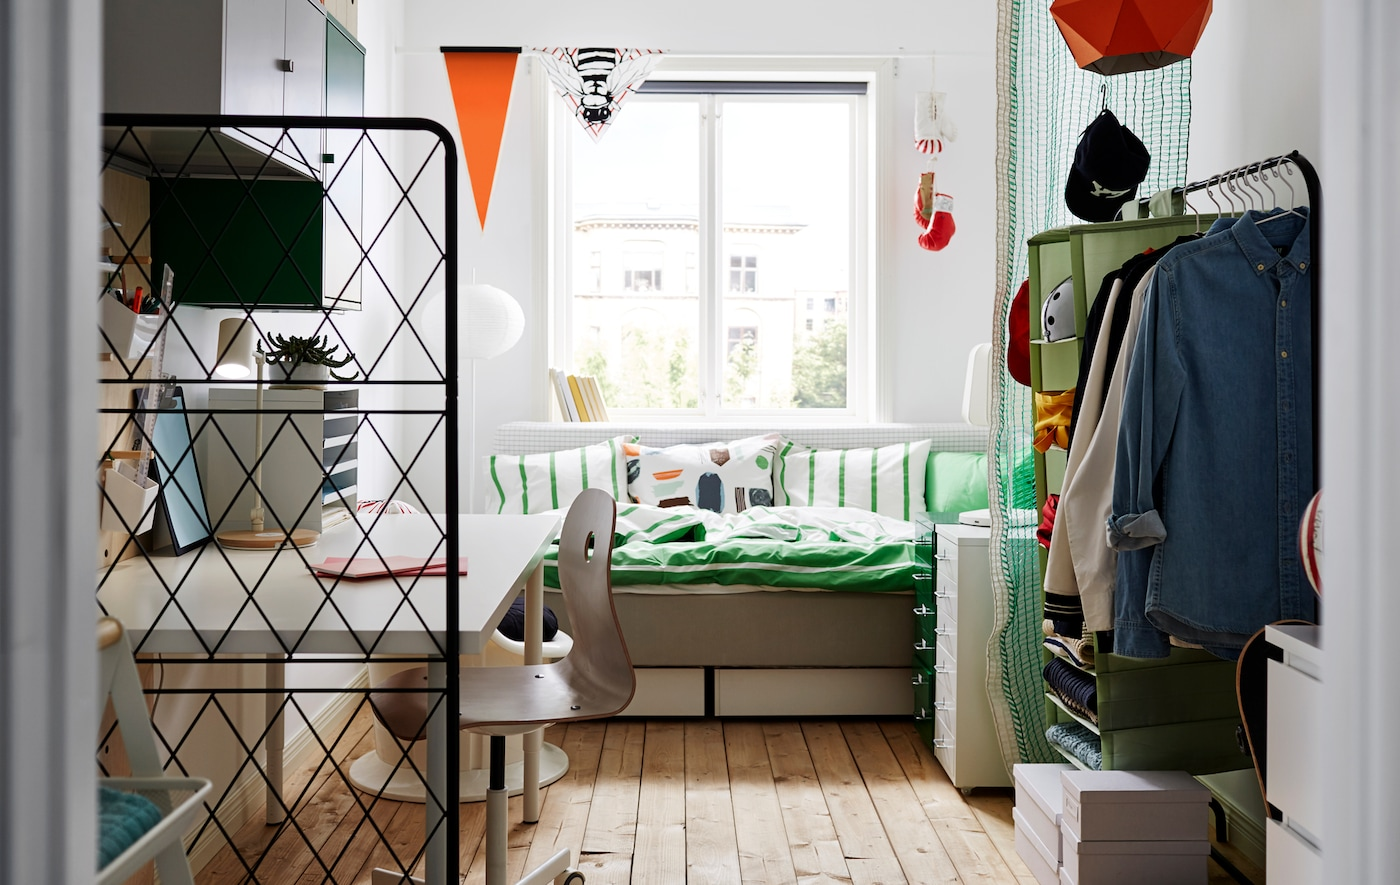 Dorm room by Emma Parkinson for IKEA